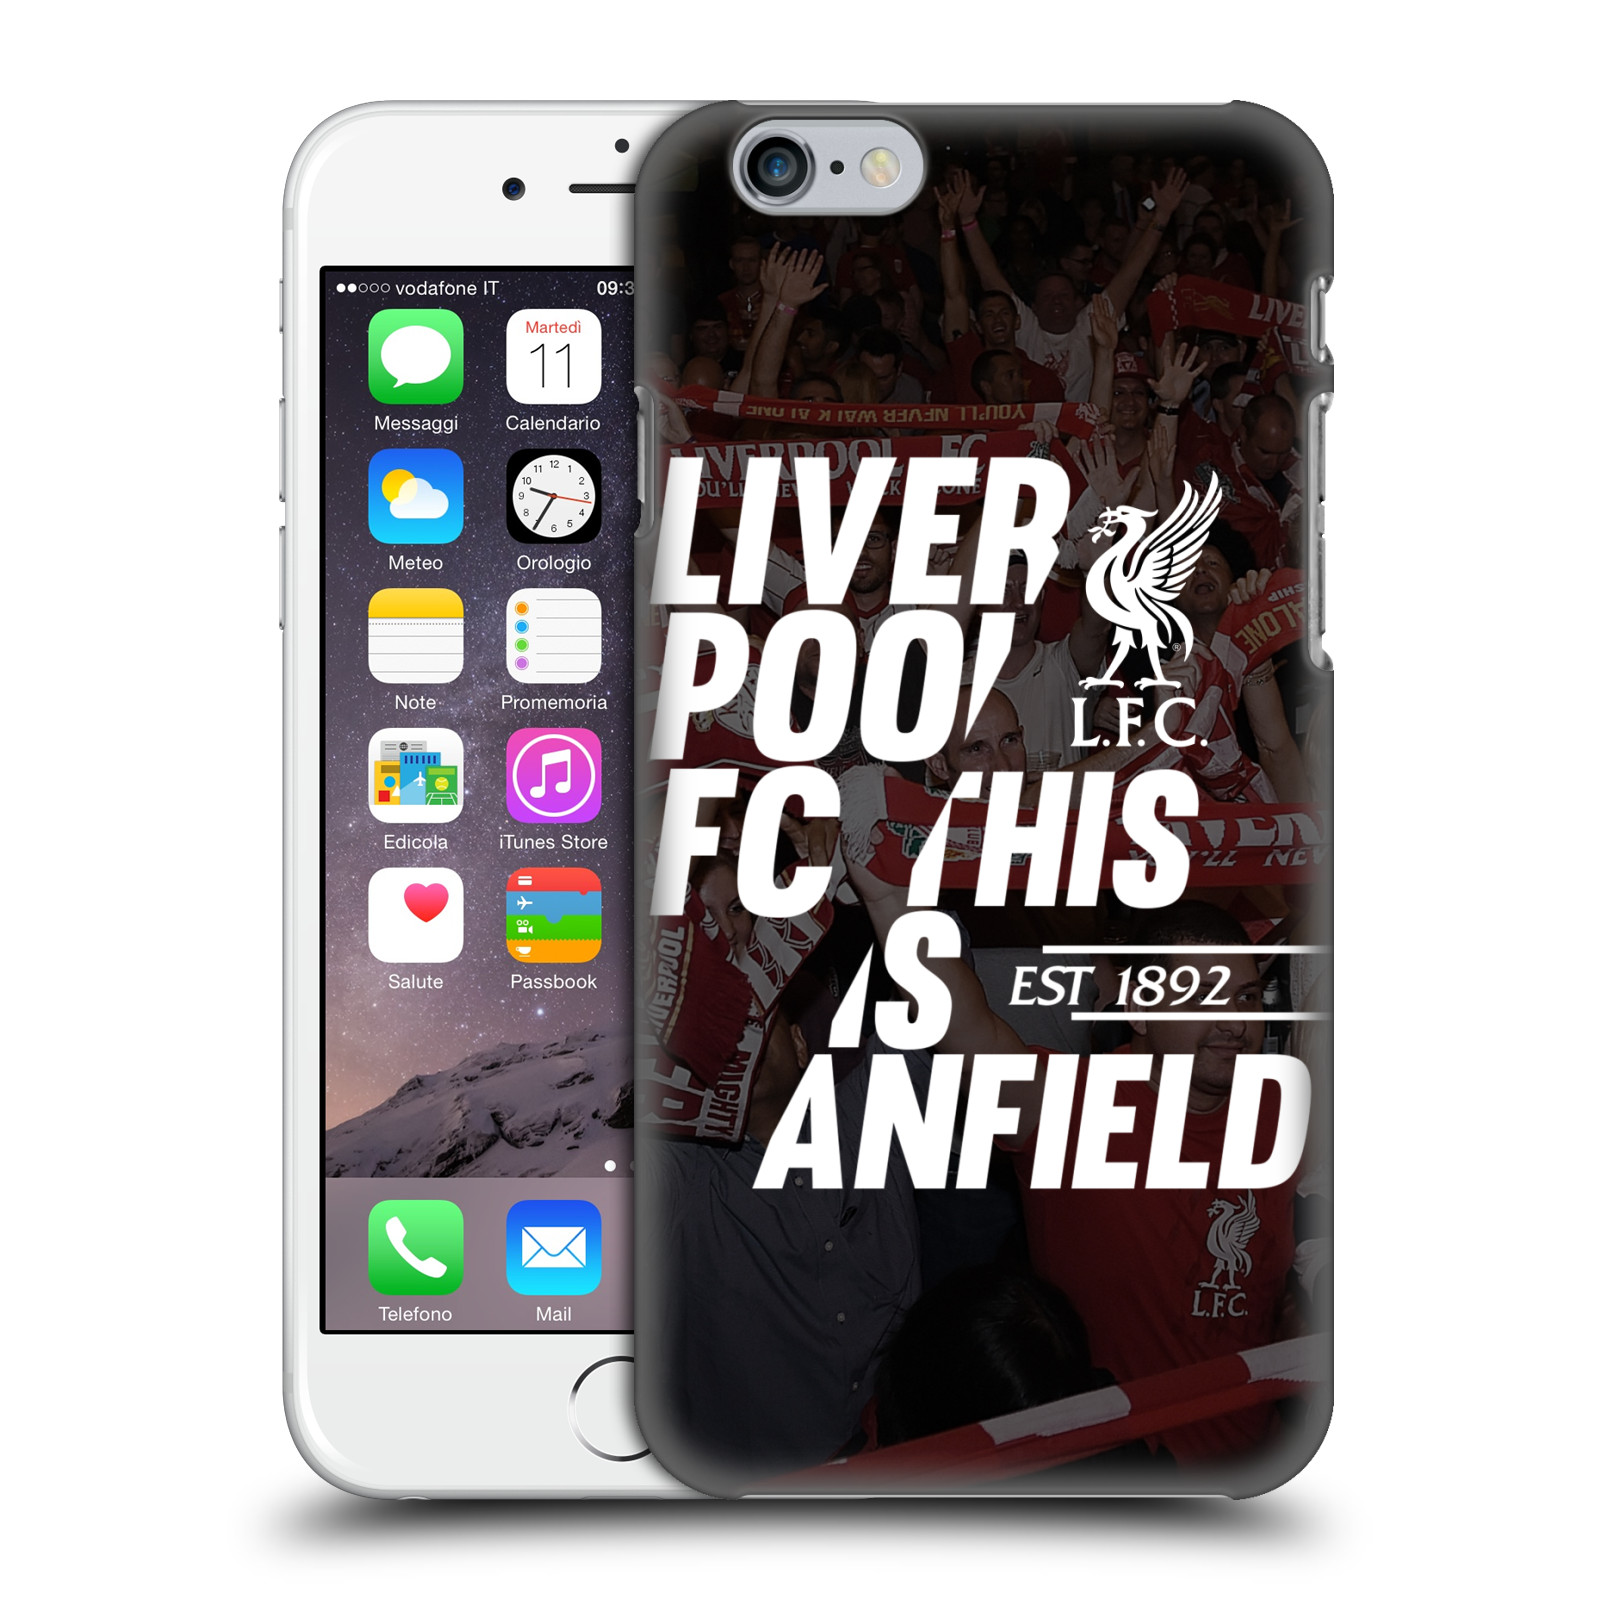 Liverpool FC LFC This Is Anfield-Black 4